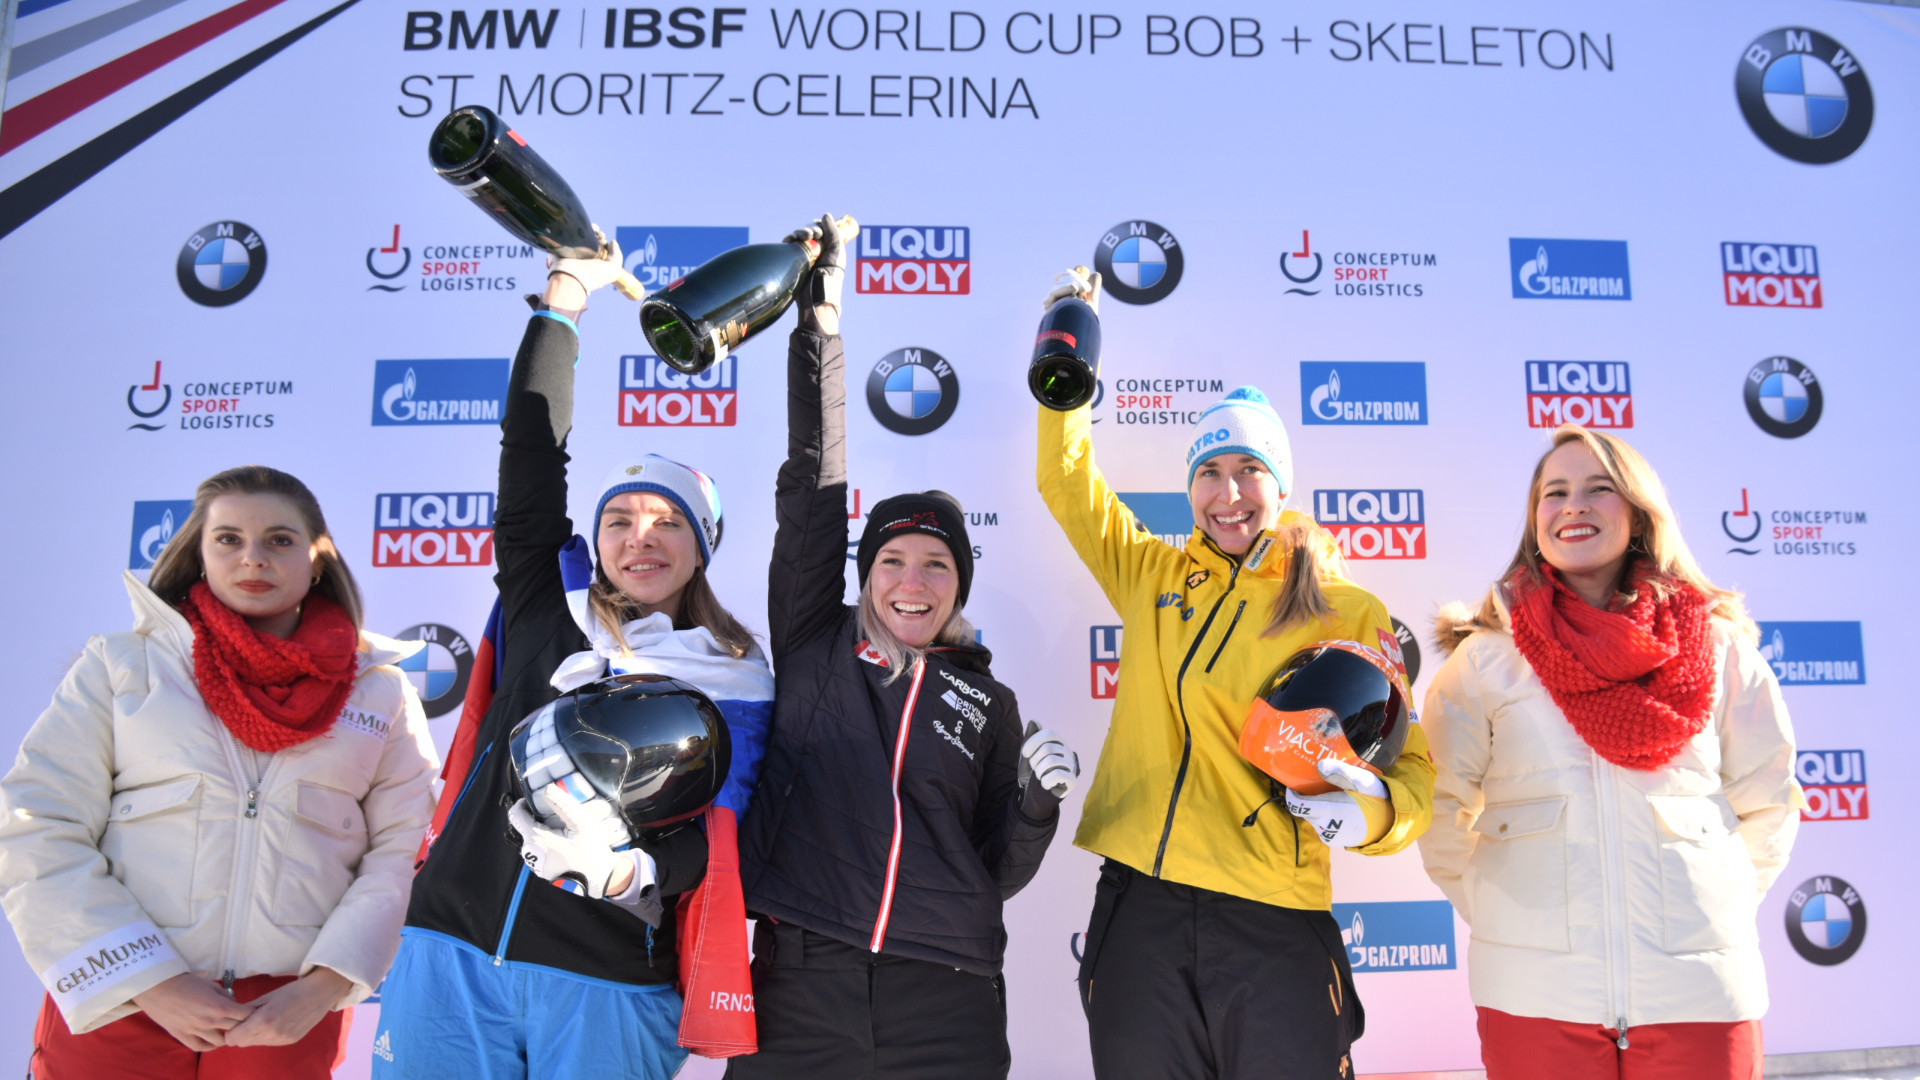 Canada's Mirela Rahneva, centre, won the IBSF World Cup women's skeleton race in St Moritz, with Russia's Elena Nikitina, left, in second and Germany's Jacqueline Loelling, right, in third ©IBSF